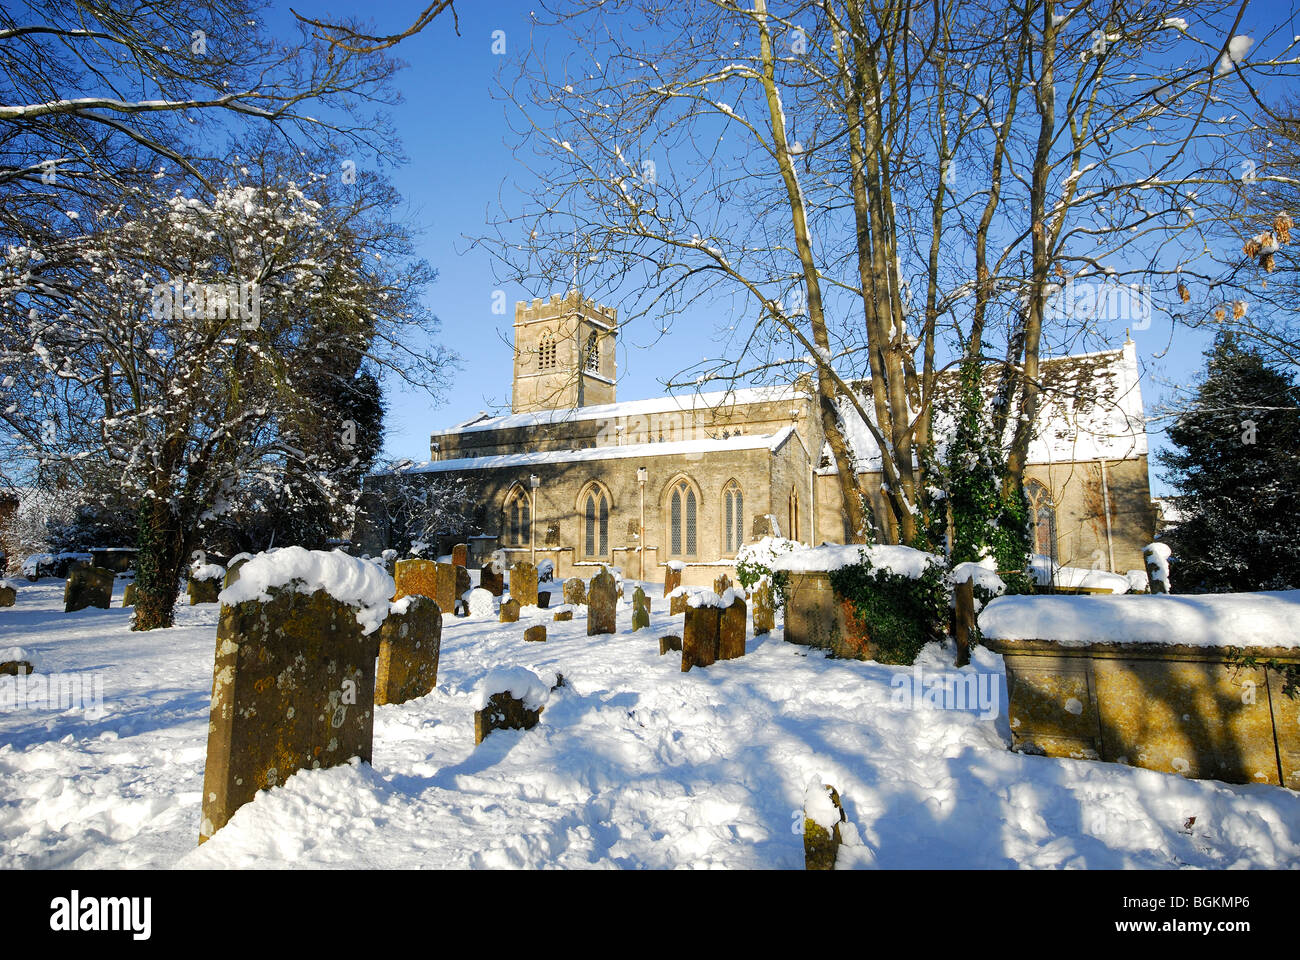 An English Country Church In The Winter